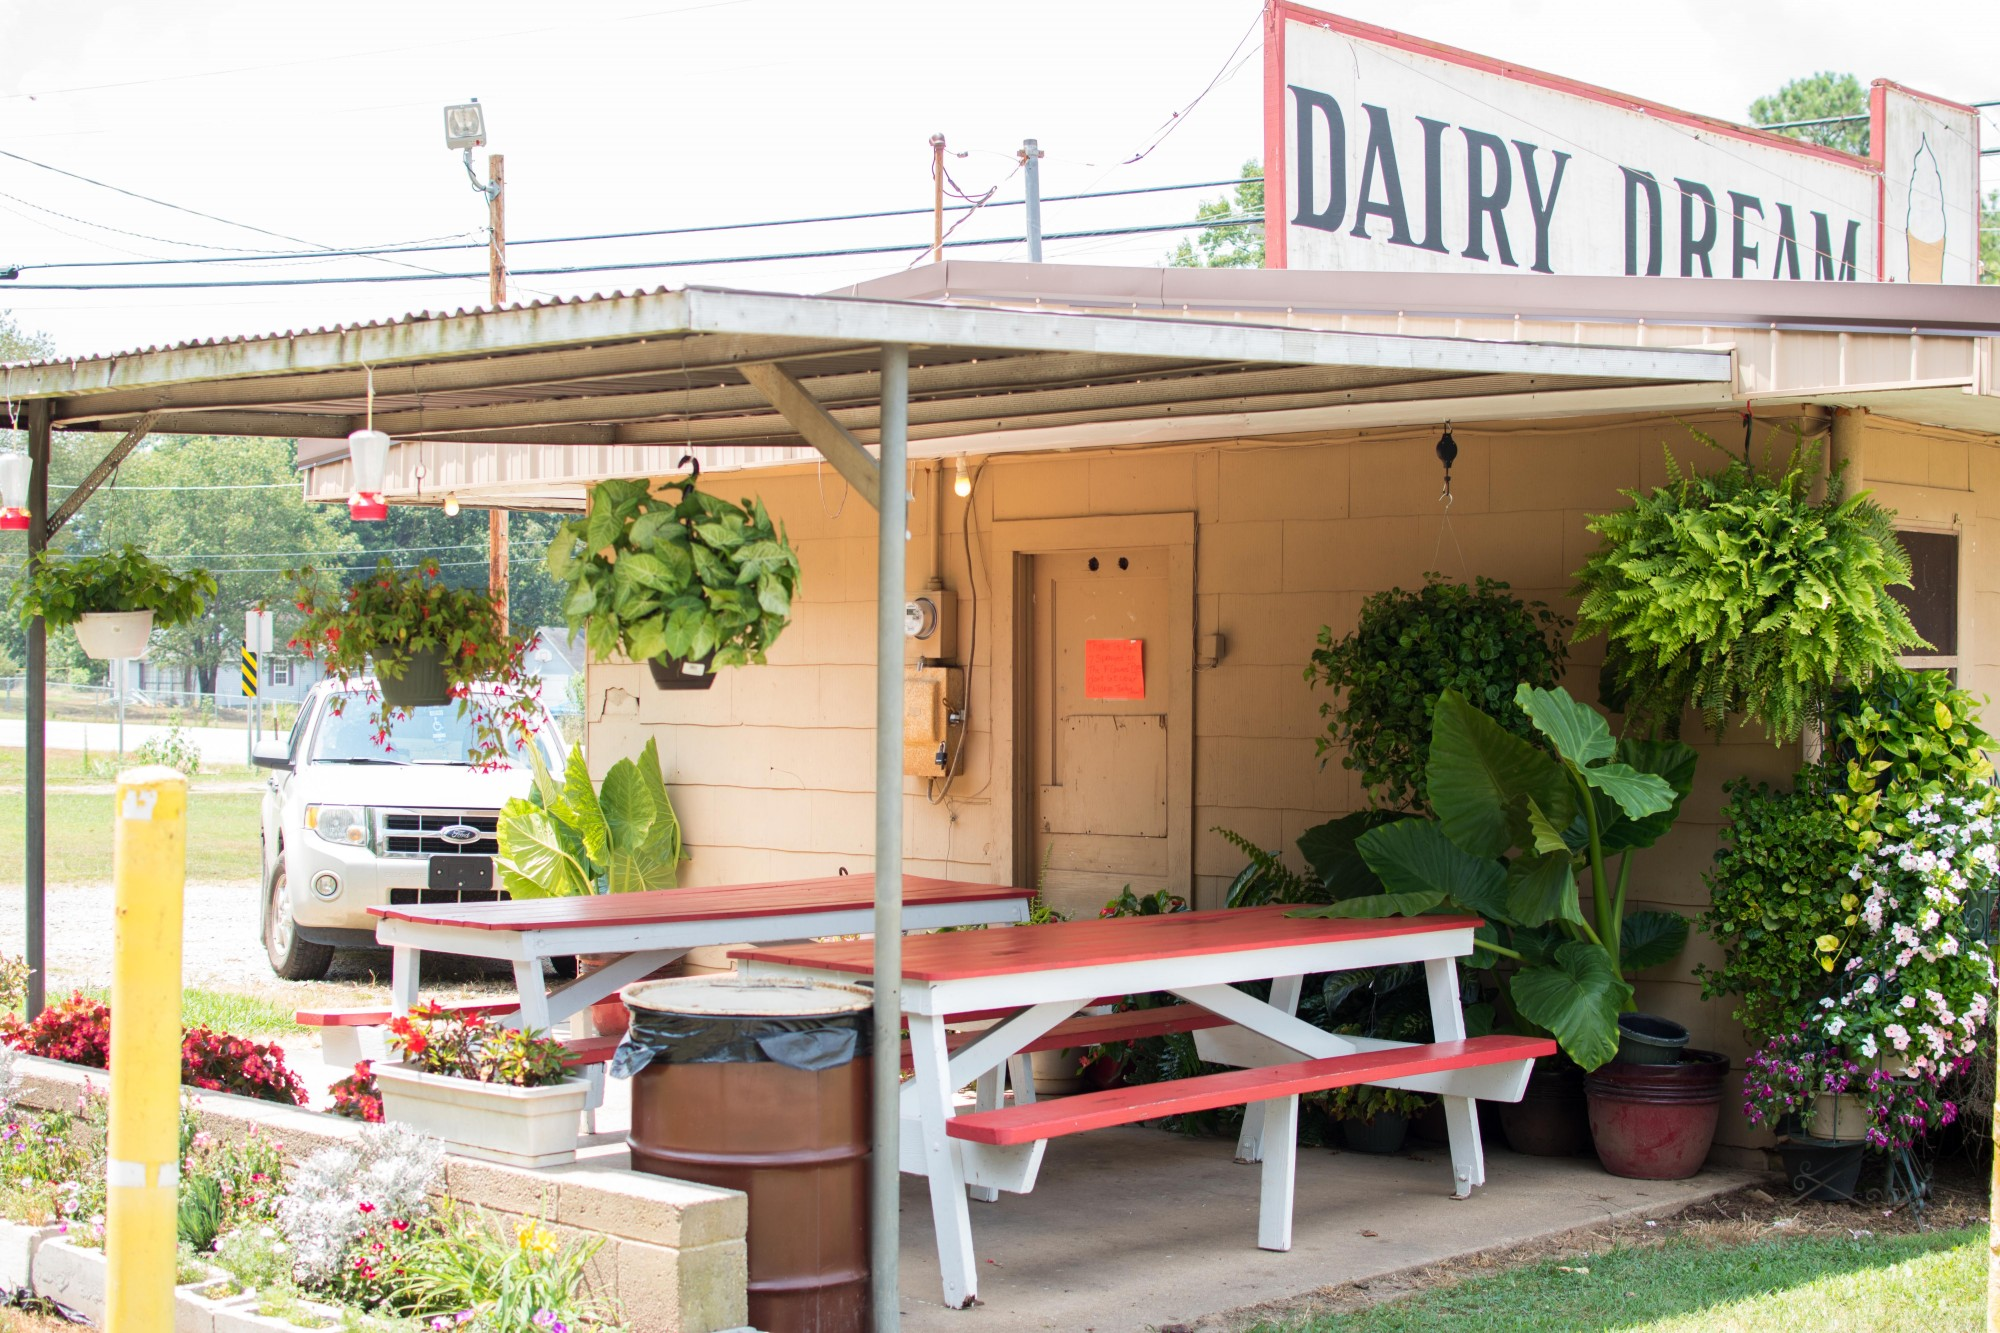 around arkansas dairy dream in mountainburg rock city eats